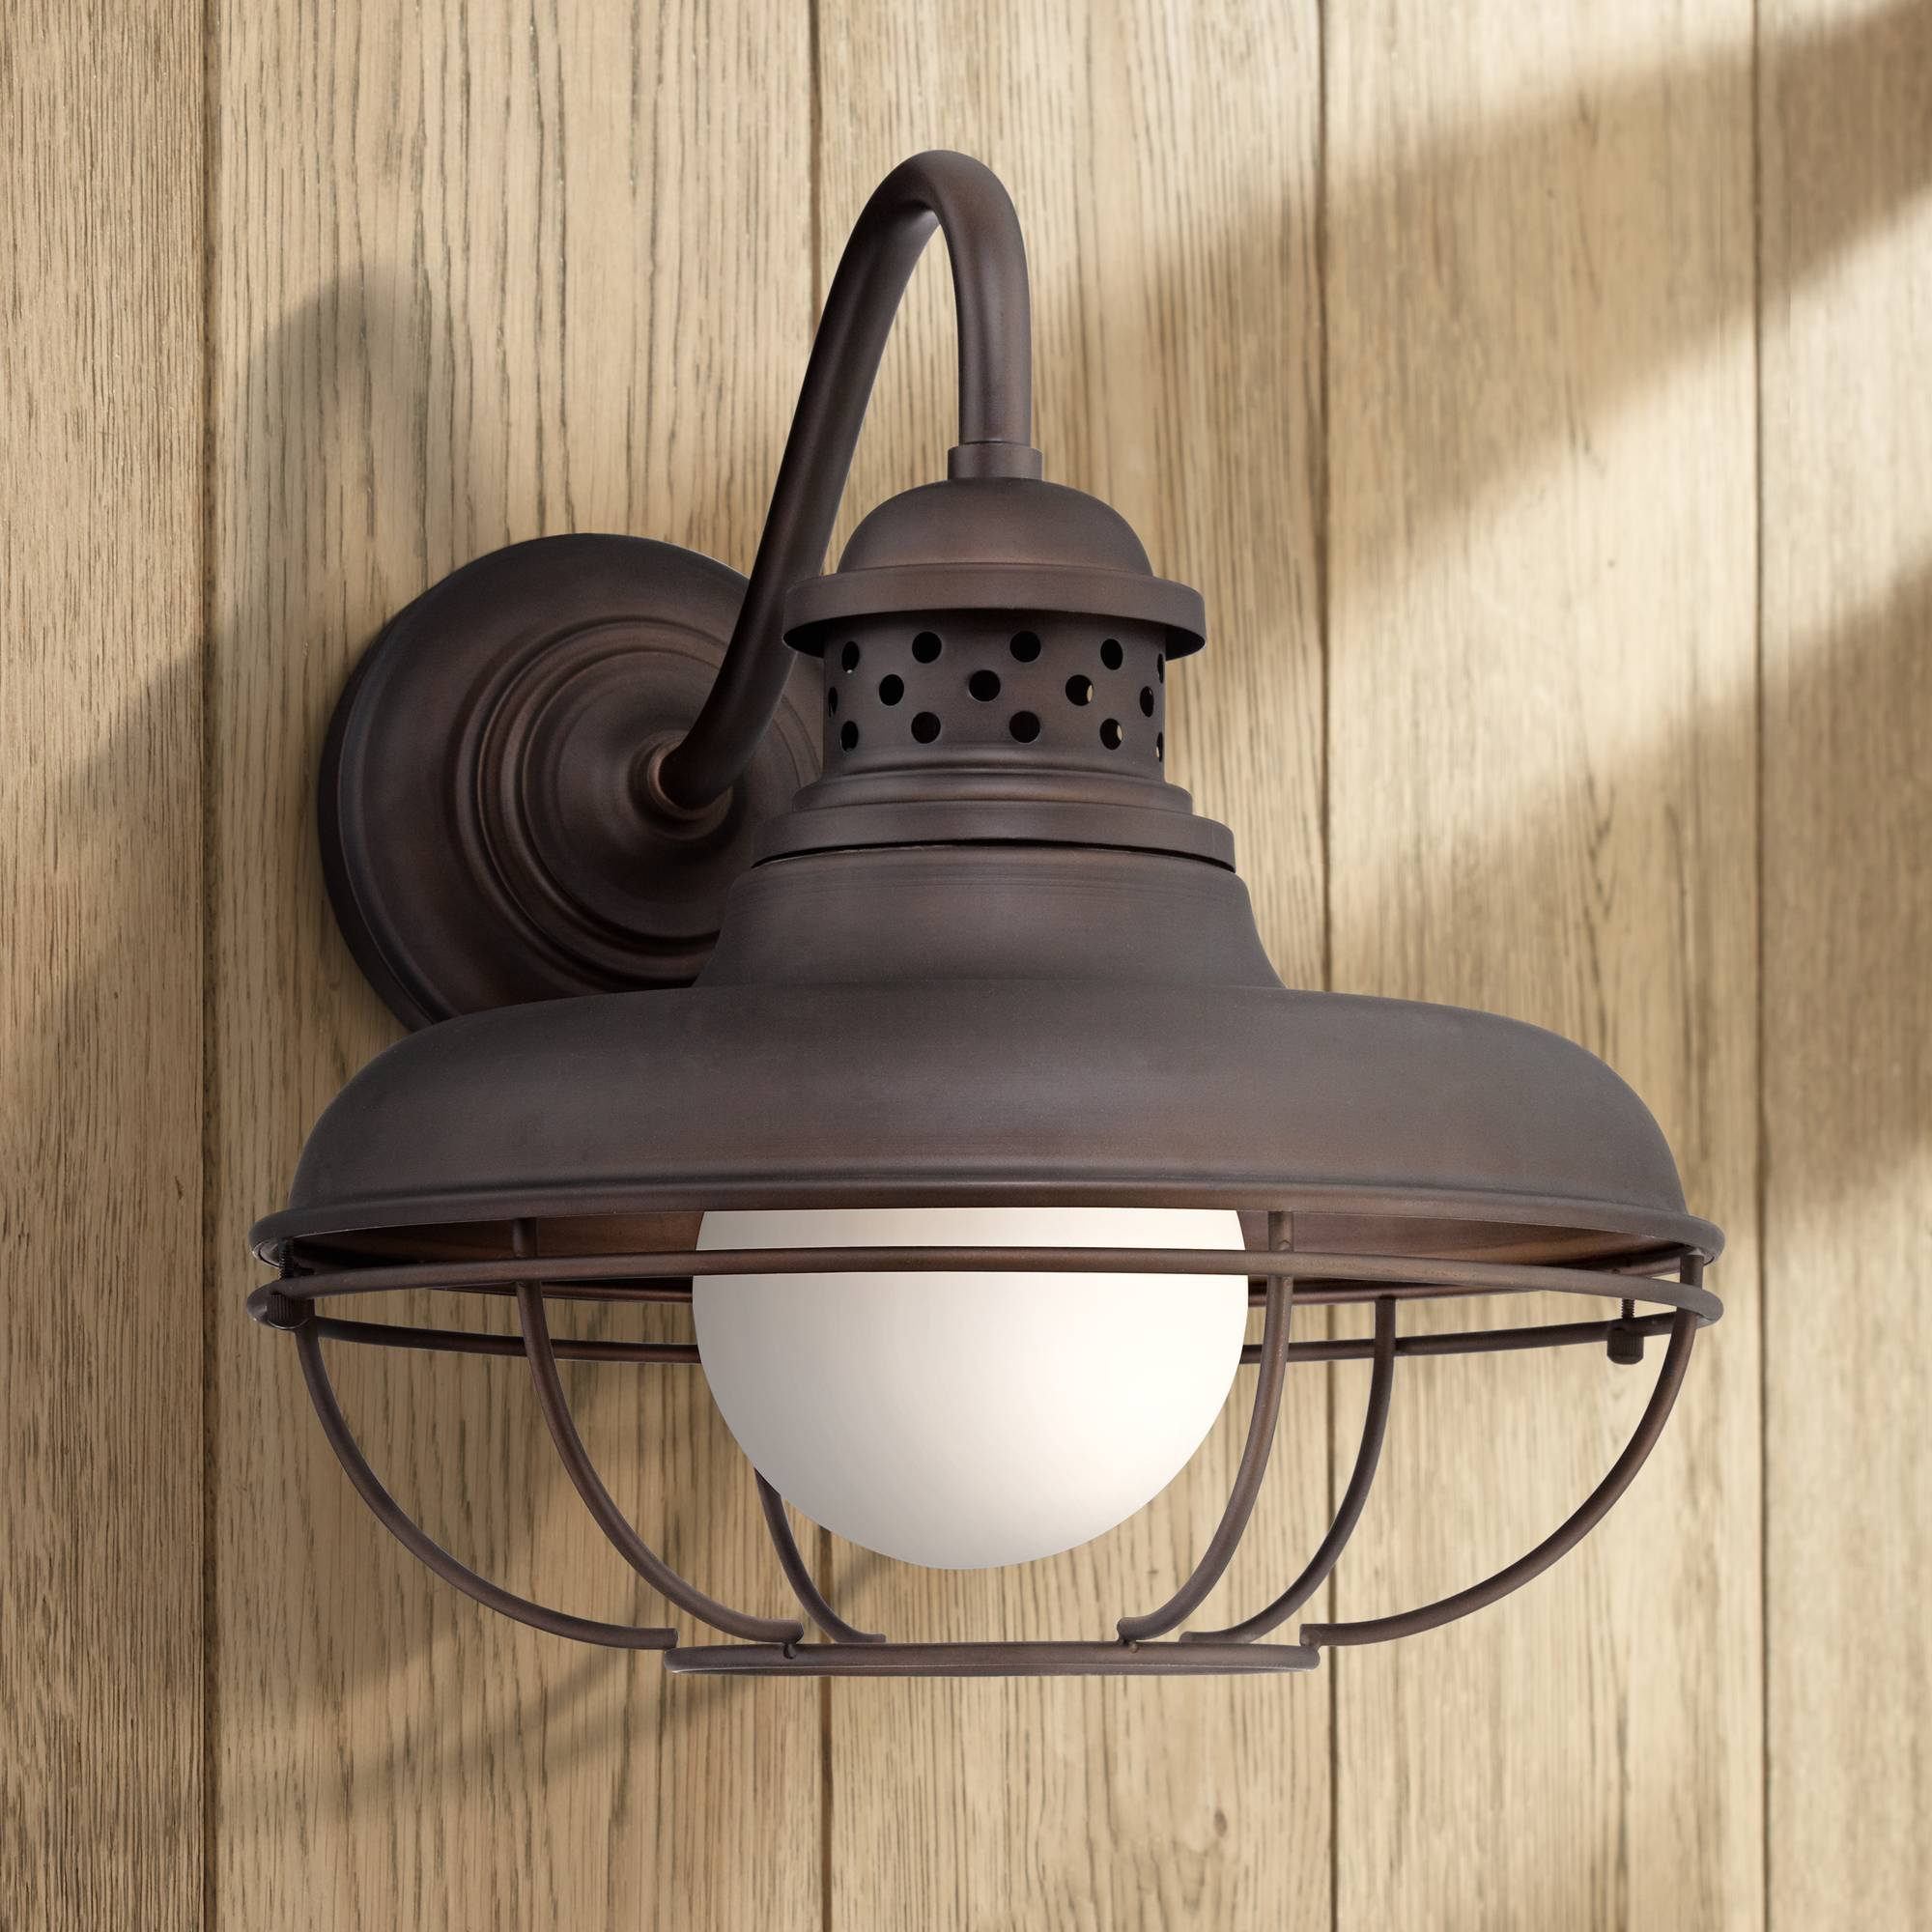 Franklin Park Rustic Farmhouse Outdoor Barn Light Fixture Oil Rubbed Bronze Open Cage 16'' White Glass Orb Diffuser for Exterior House Patio Porch Deck - Franklin Iron Works